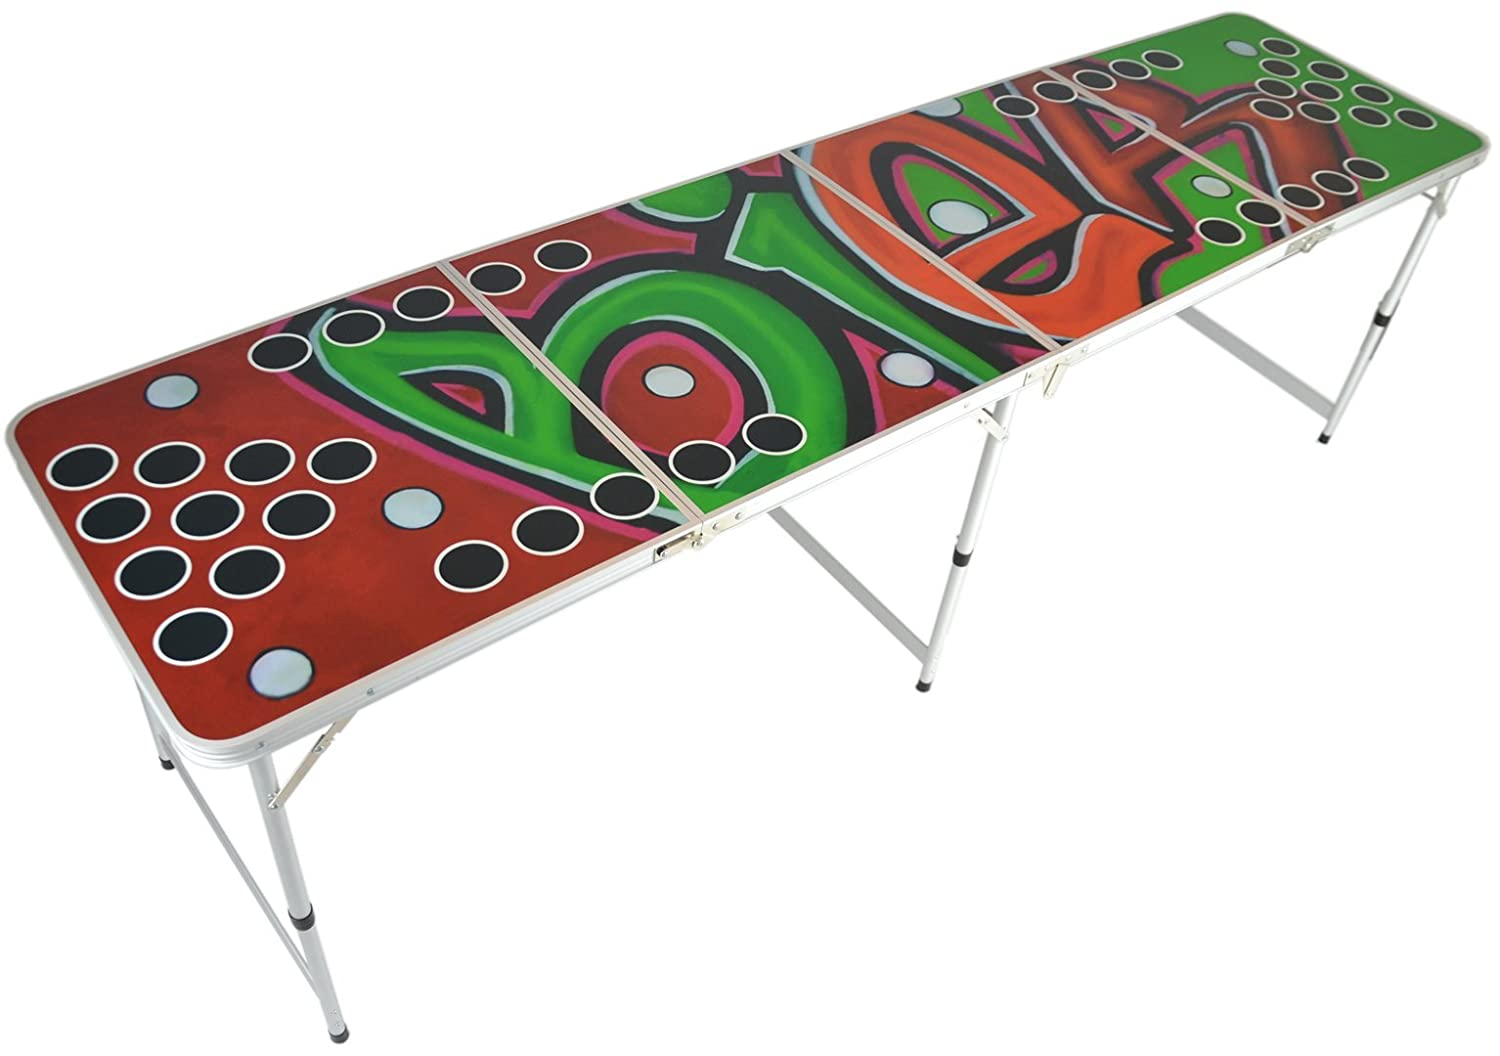 Beer pong tisch premium graffiti design beer pong for Beer pong tisch eigenes design